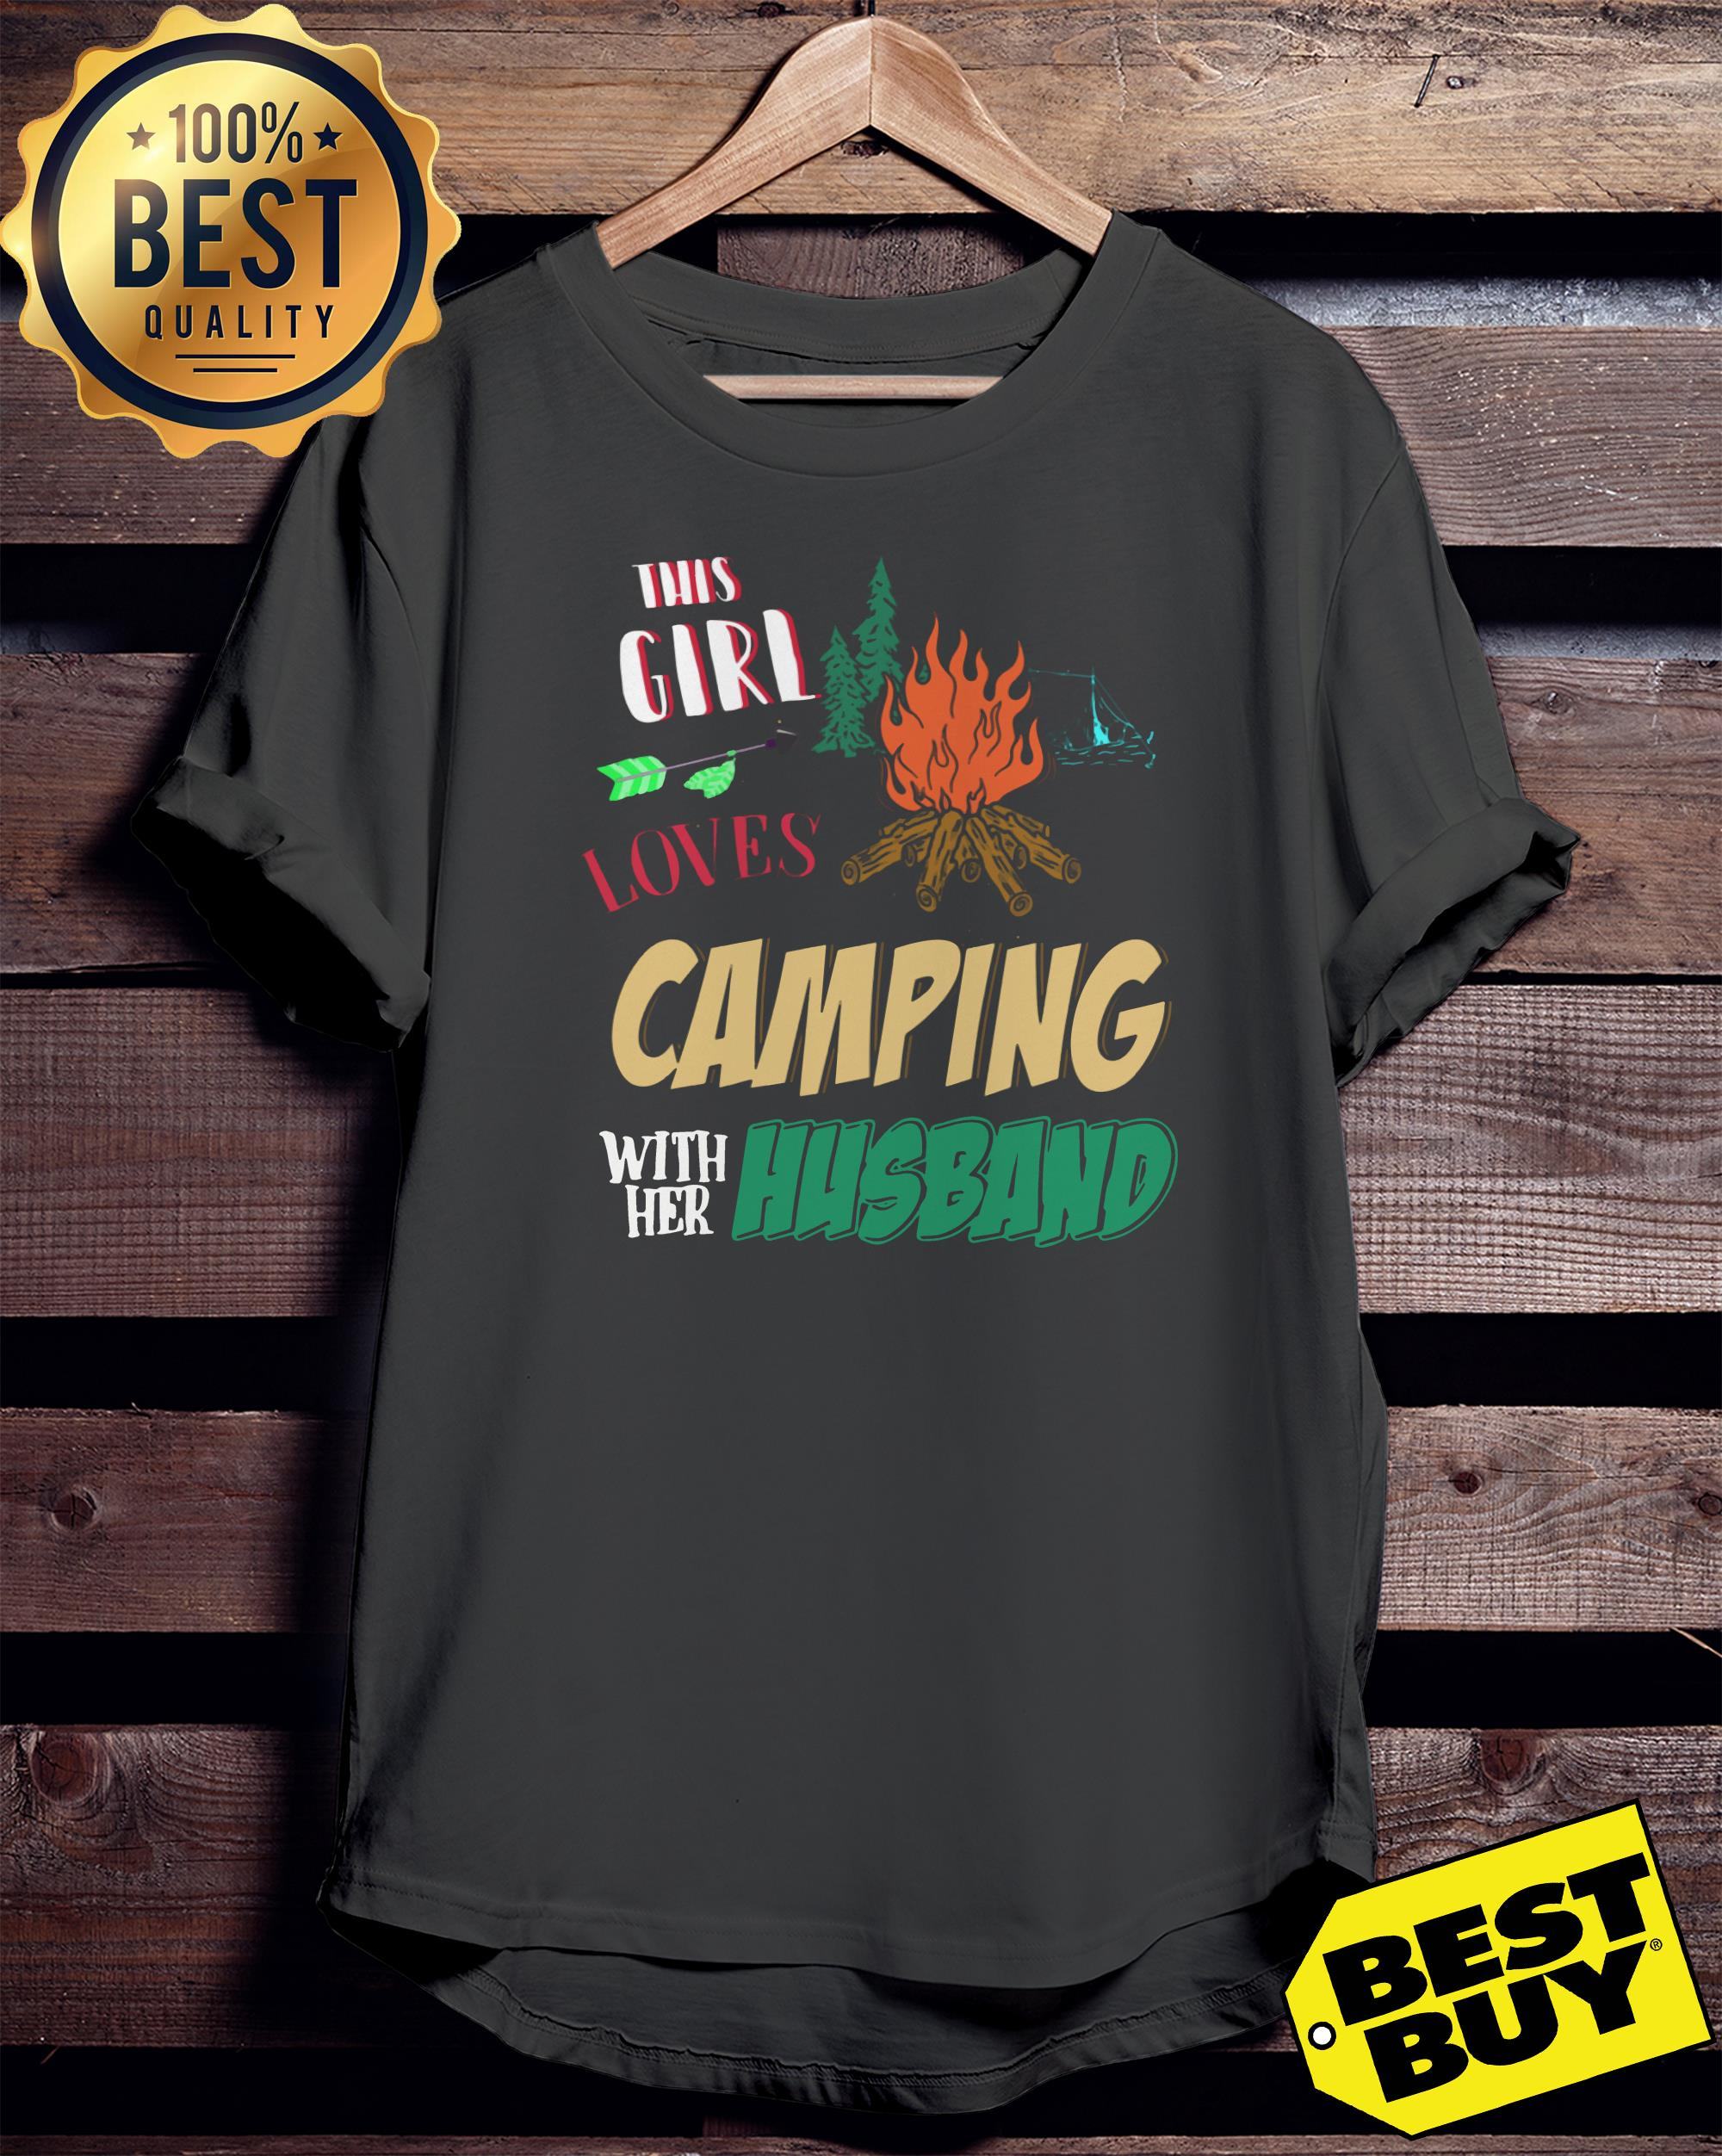 This Girl Loves Camping With Her Husband funny v-neck